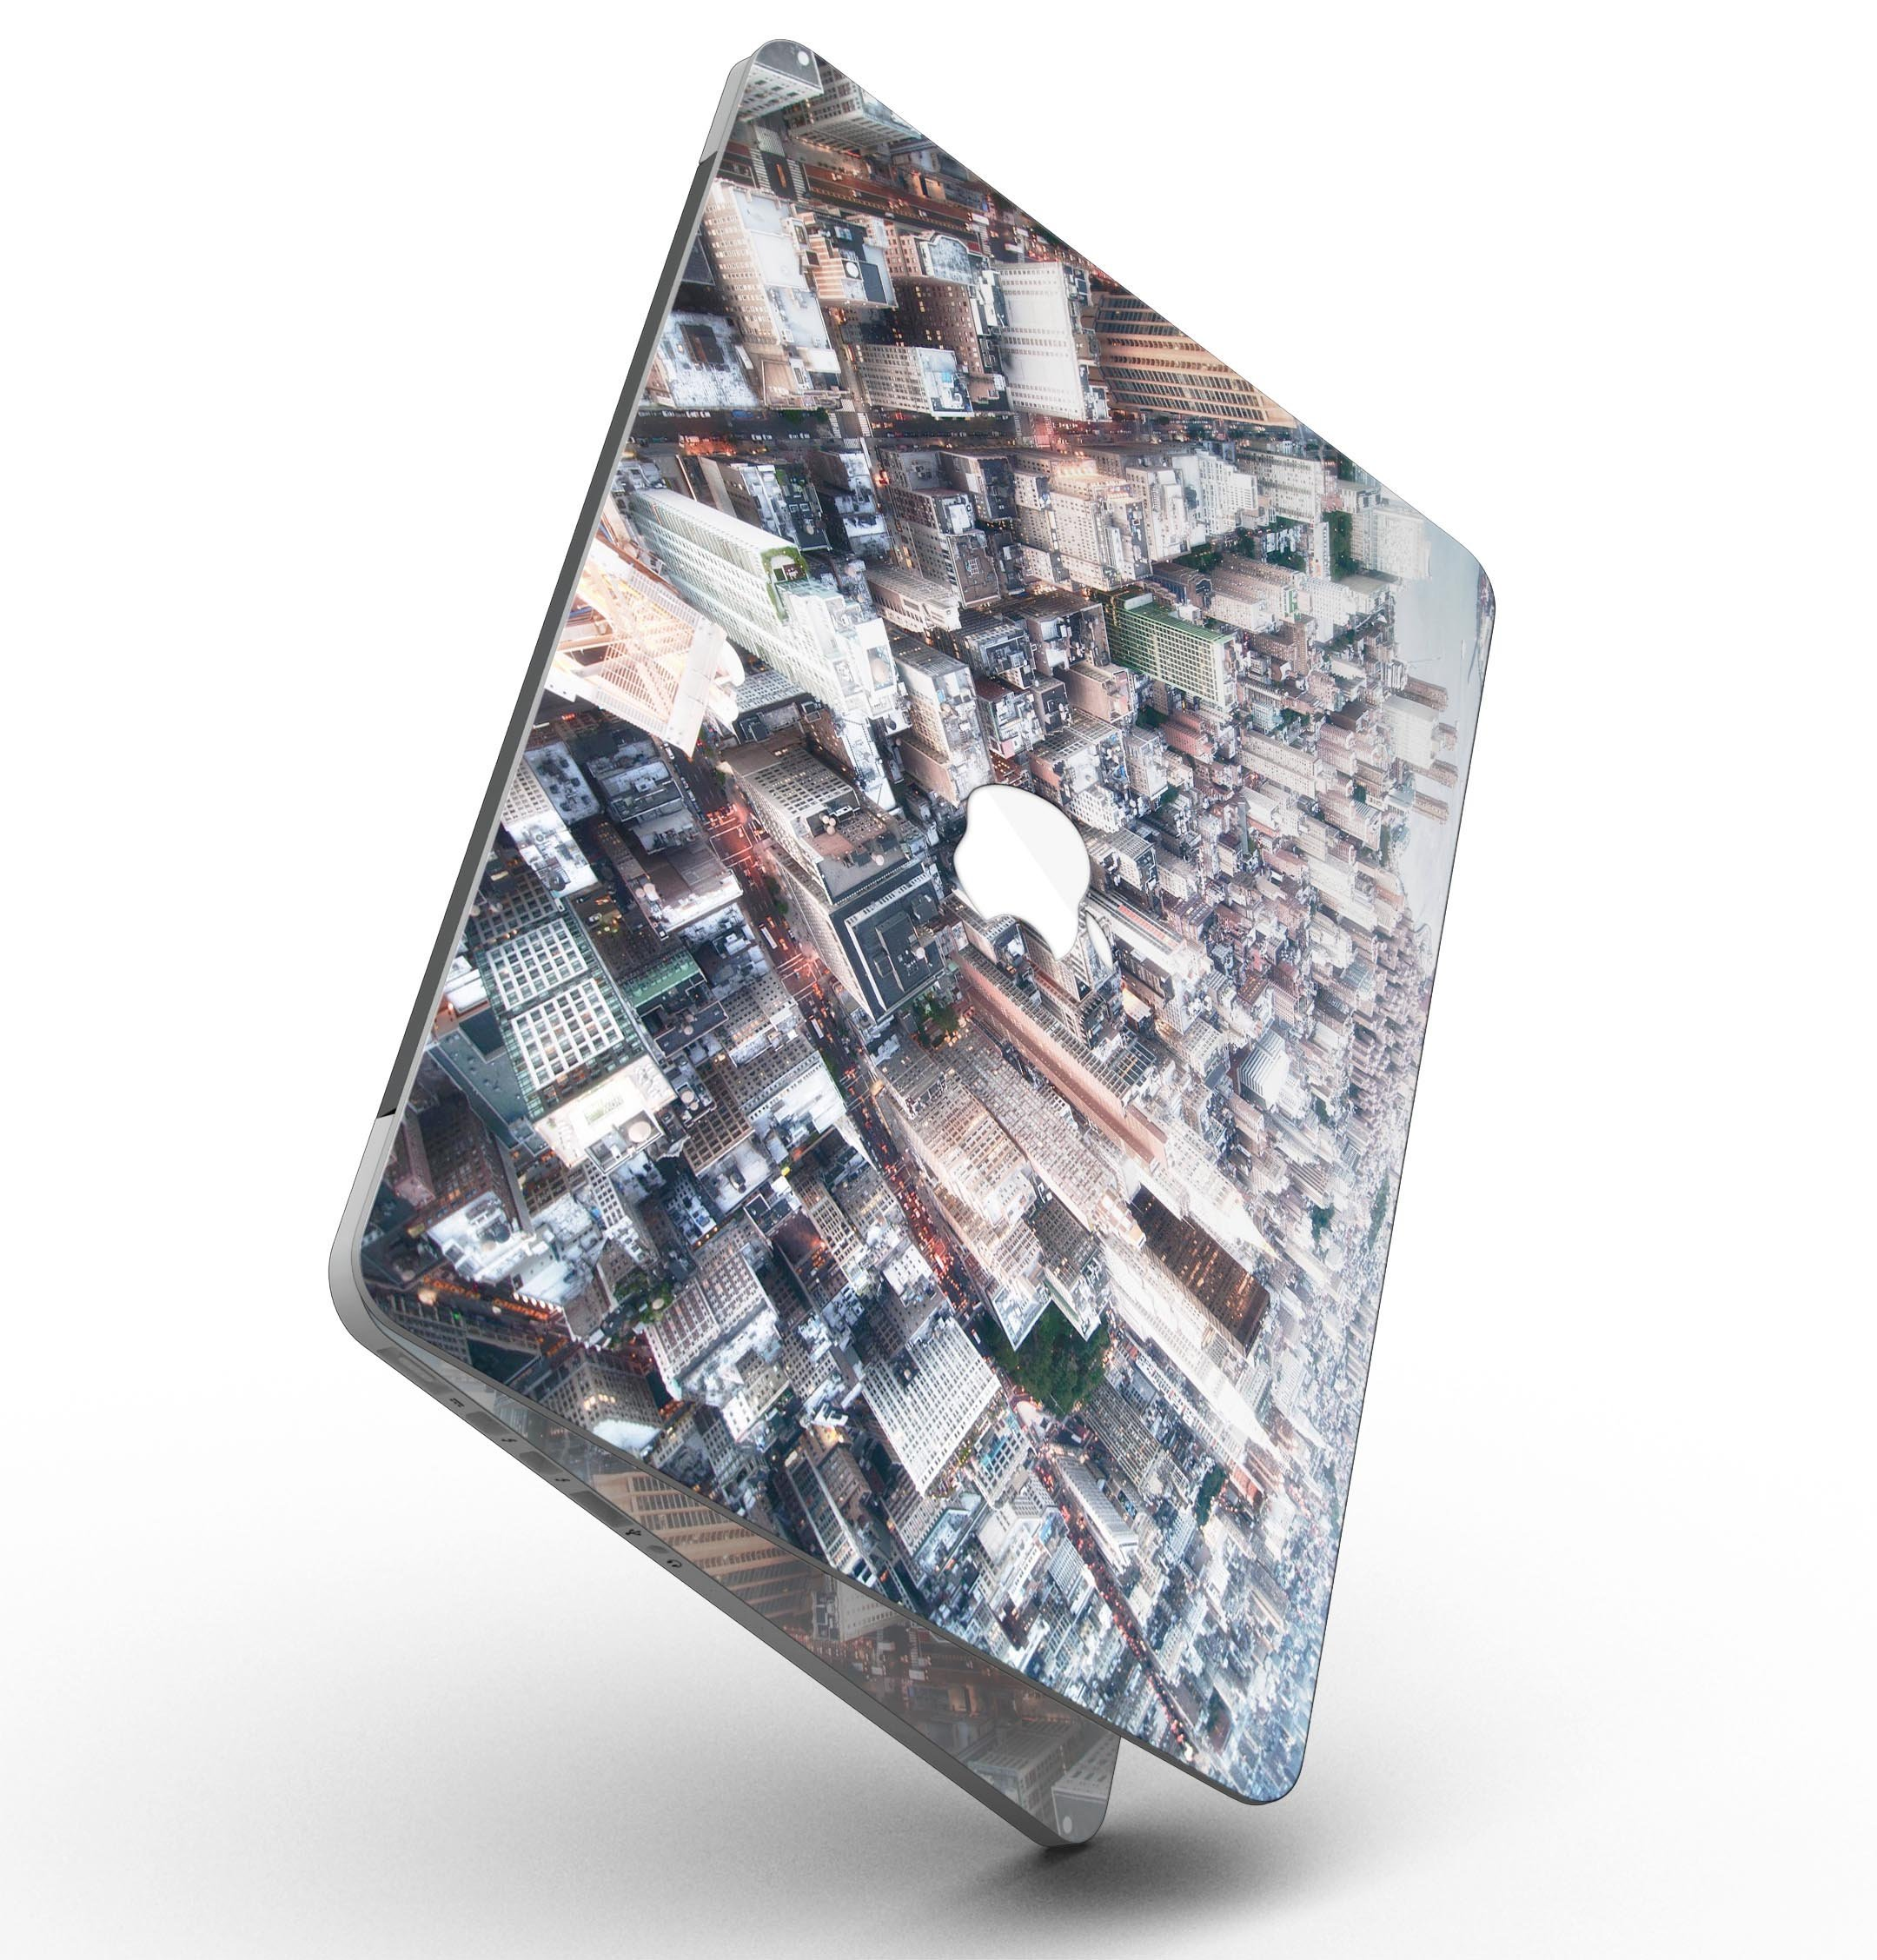 Vintage Aerial Cityscape - MacBook Pro with Retina Display Full-Coverage Skin Kit by iiRov (Image #2)